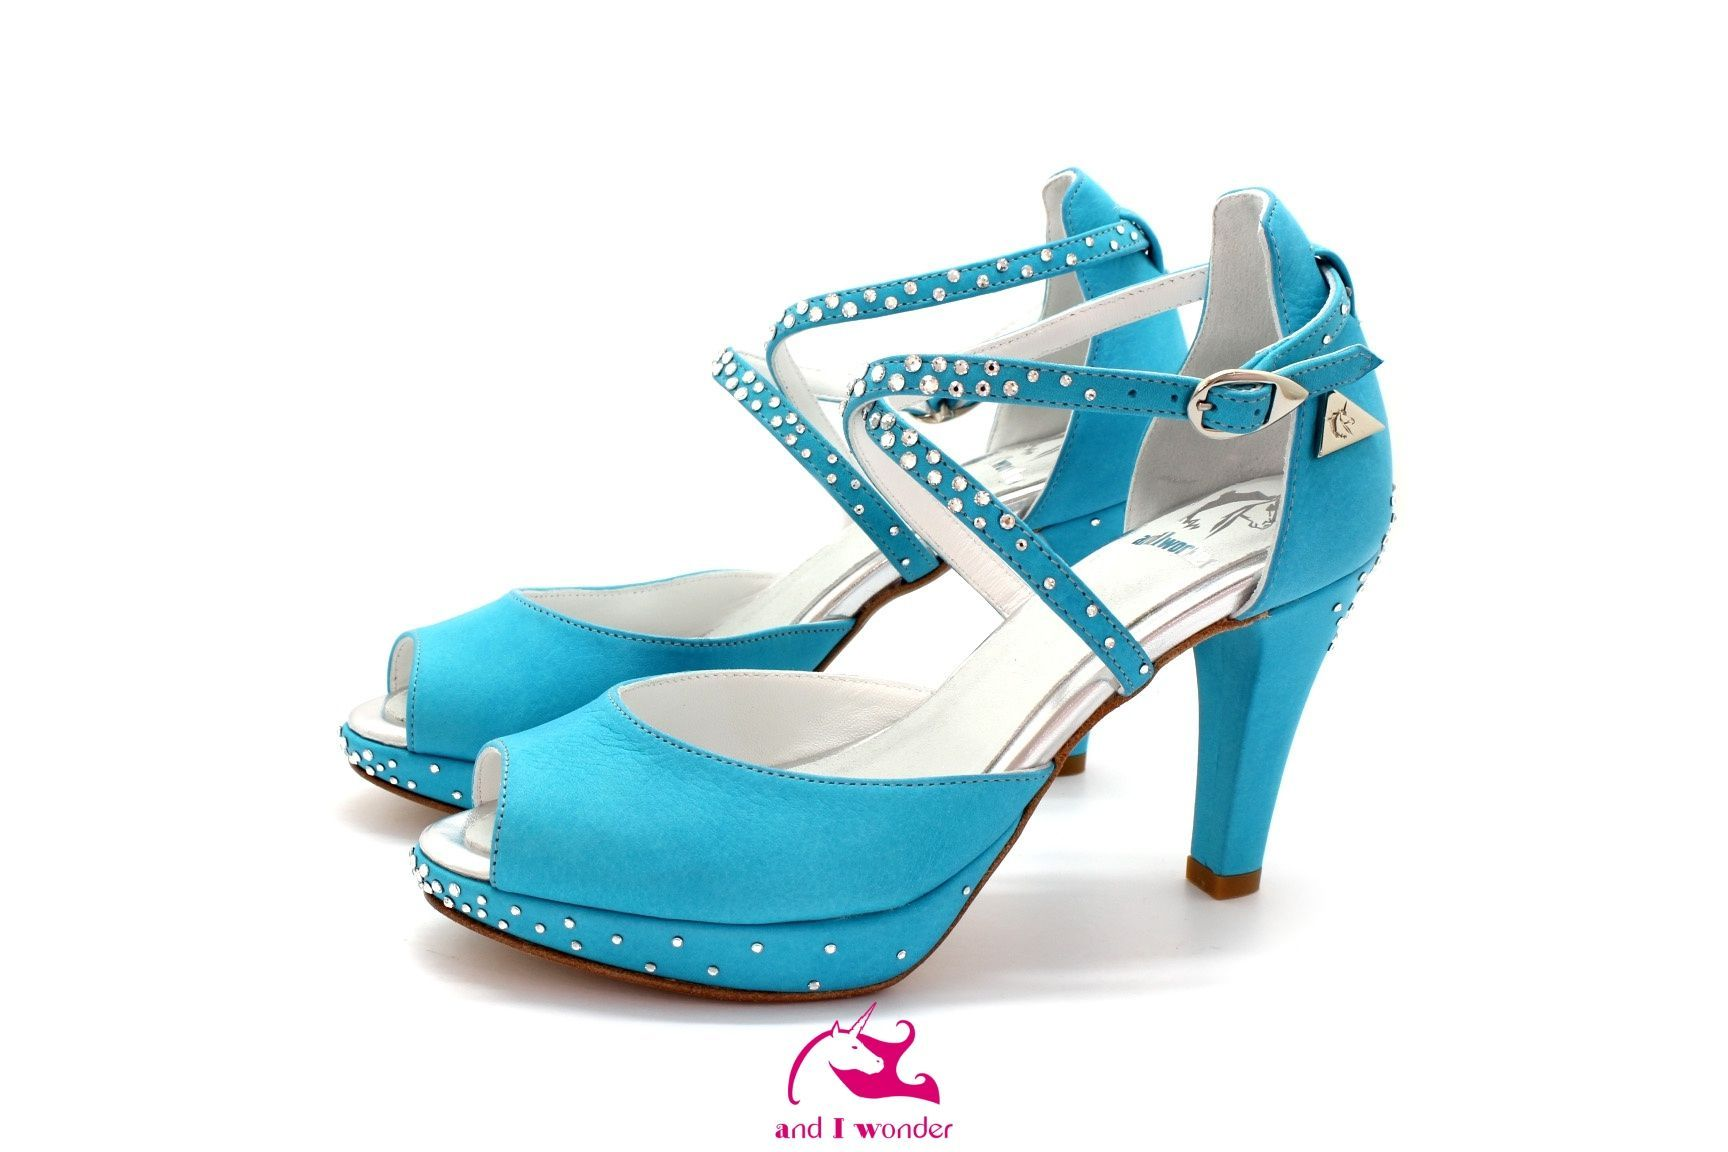 b693da8ec4c Custom made turquoise sauvage low heel shoe open toe with a double crossed  ankle strap and